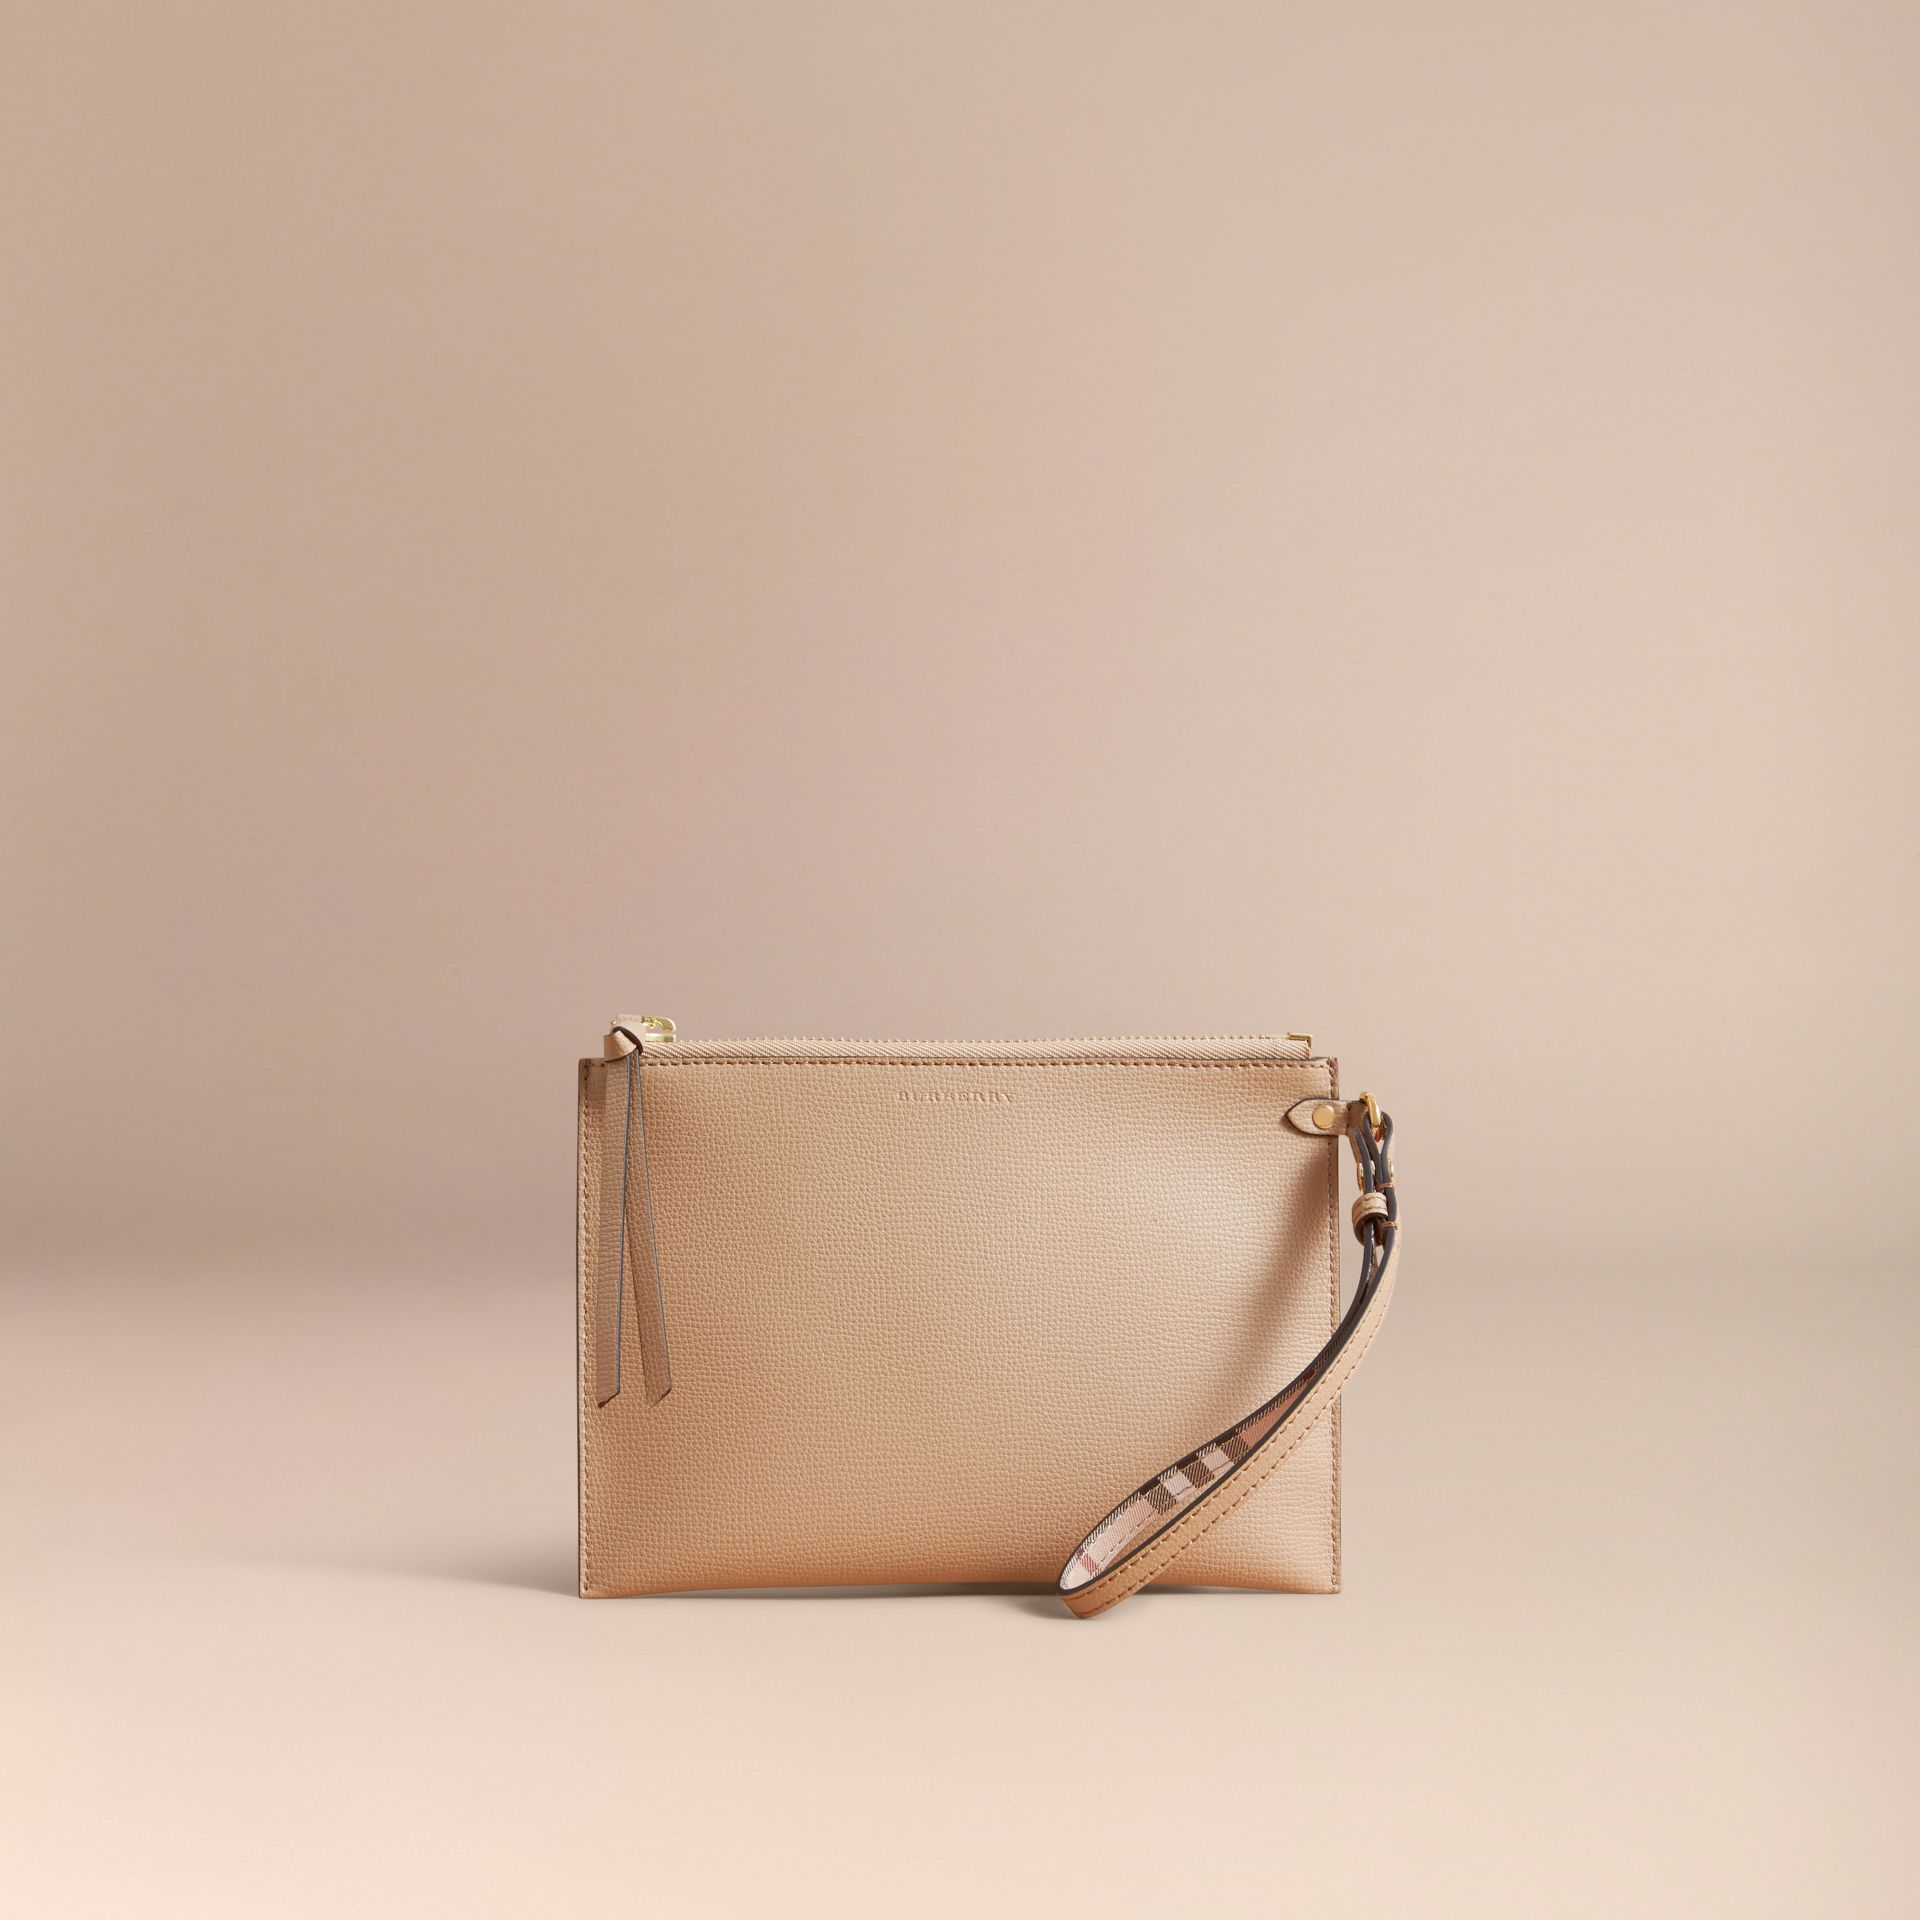 Haymarket Check and Leather Pouch in Mid Camel - Women | Burberry Singapore - gallery image 6